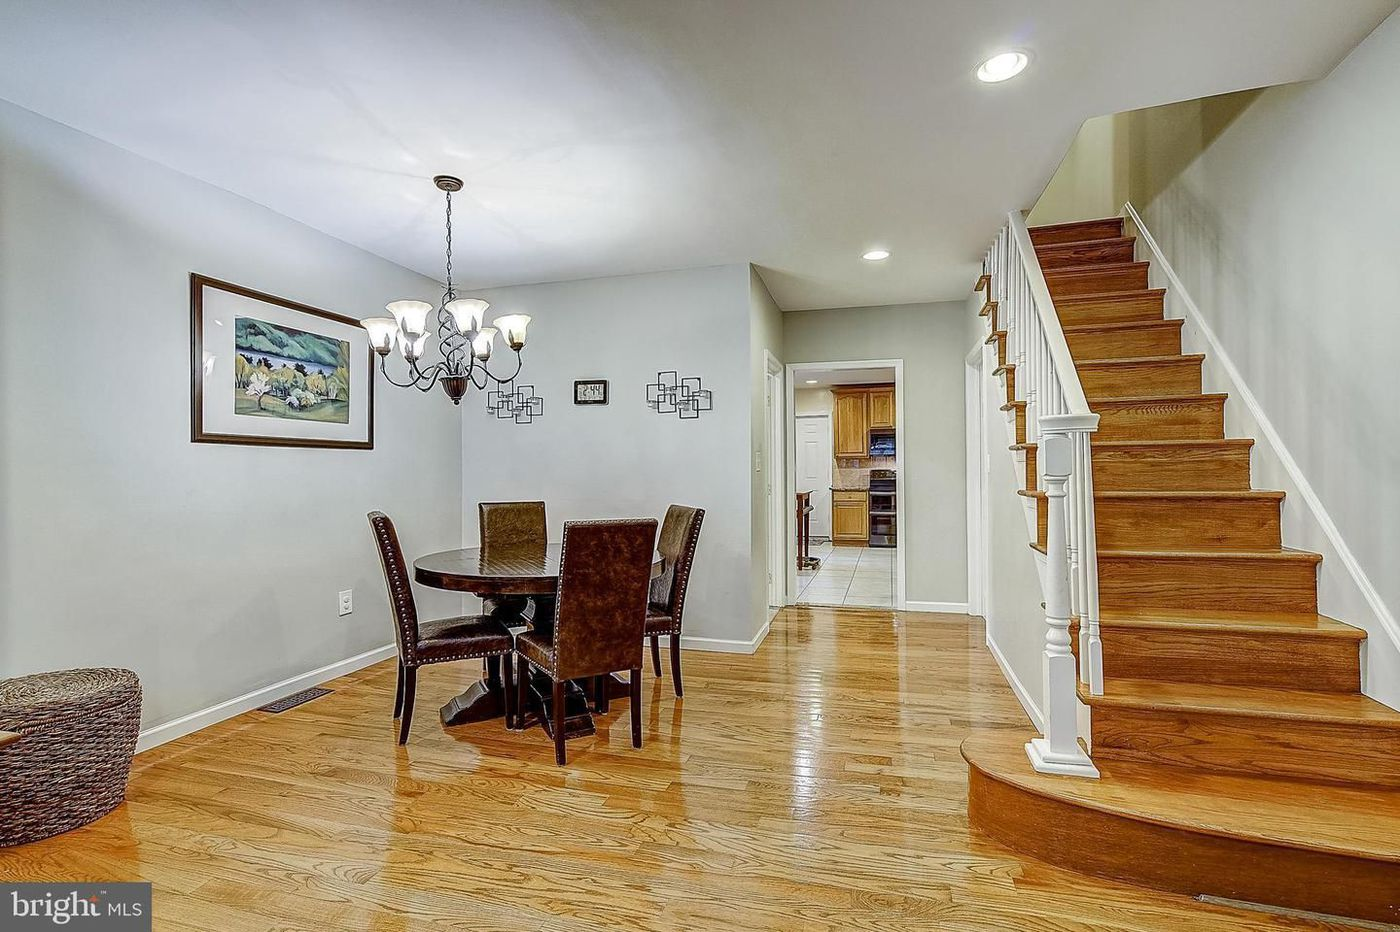 On the market: A multigenerational house in Philly's Pennsport neighborhood